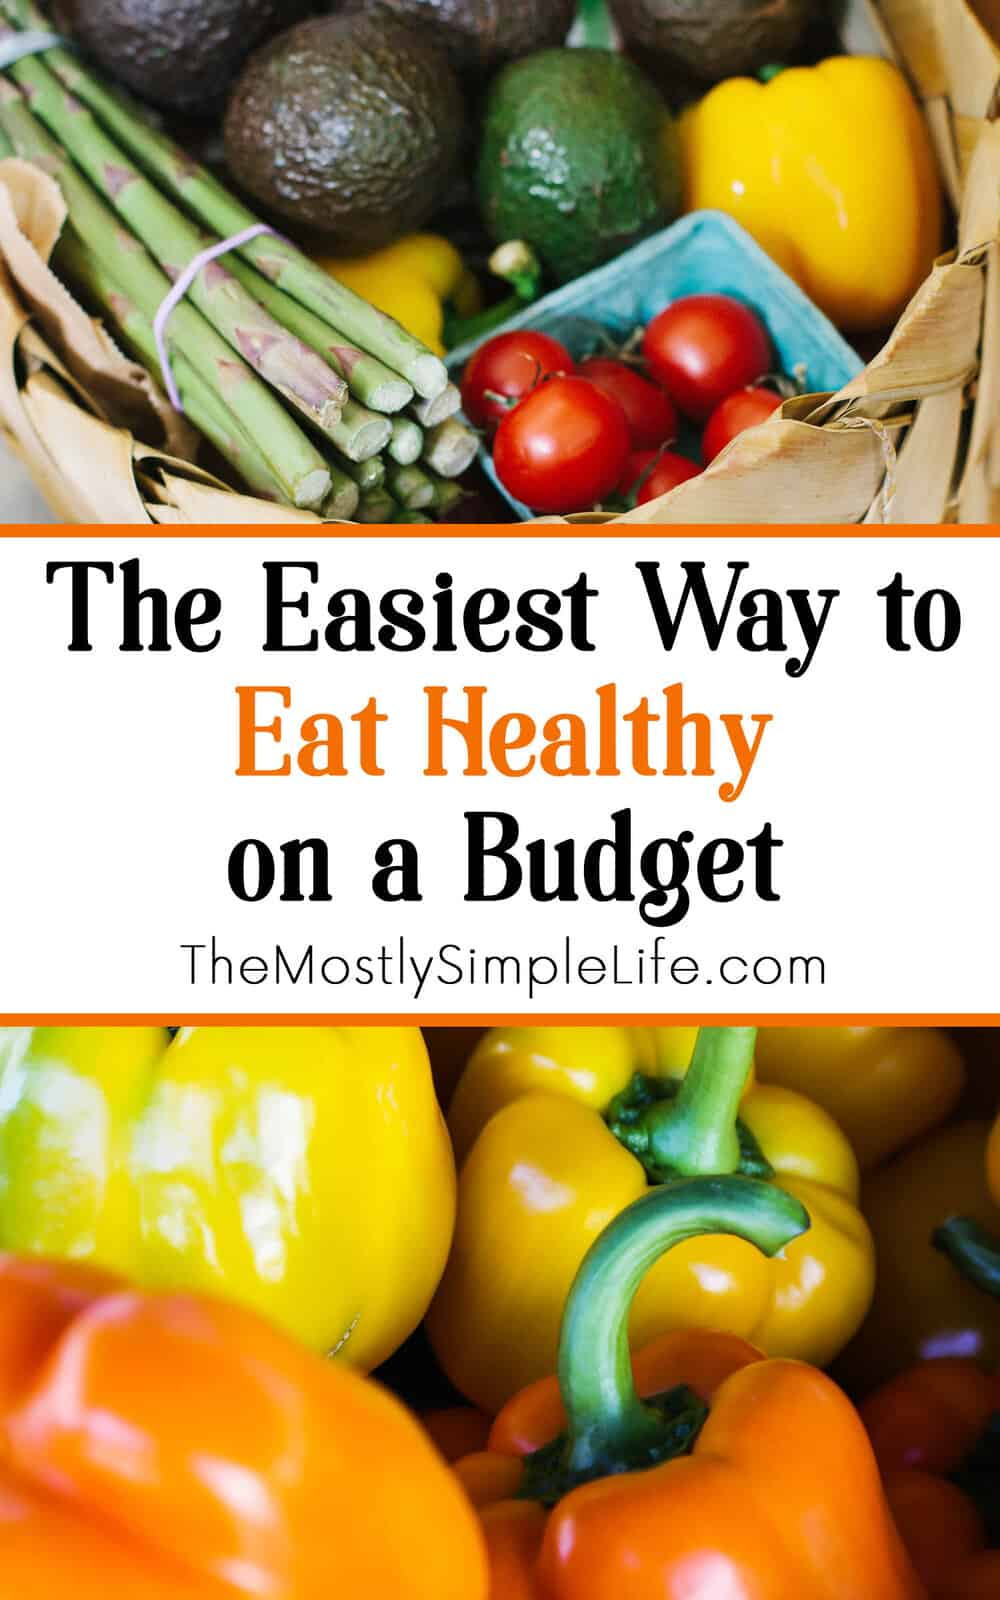 The easiest way to eat healthy on a budget the mostly simple life amazing tips for eating healthy on a budget inexpensive whole foods easy recipes i forumfinder Image collections